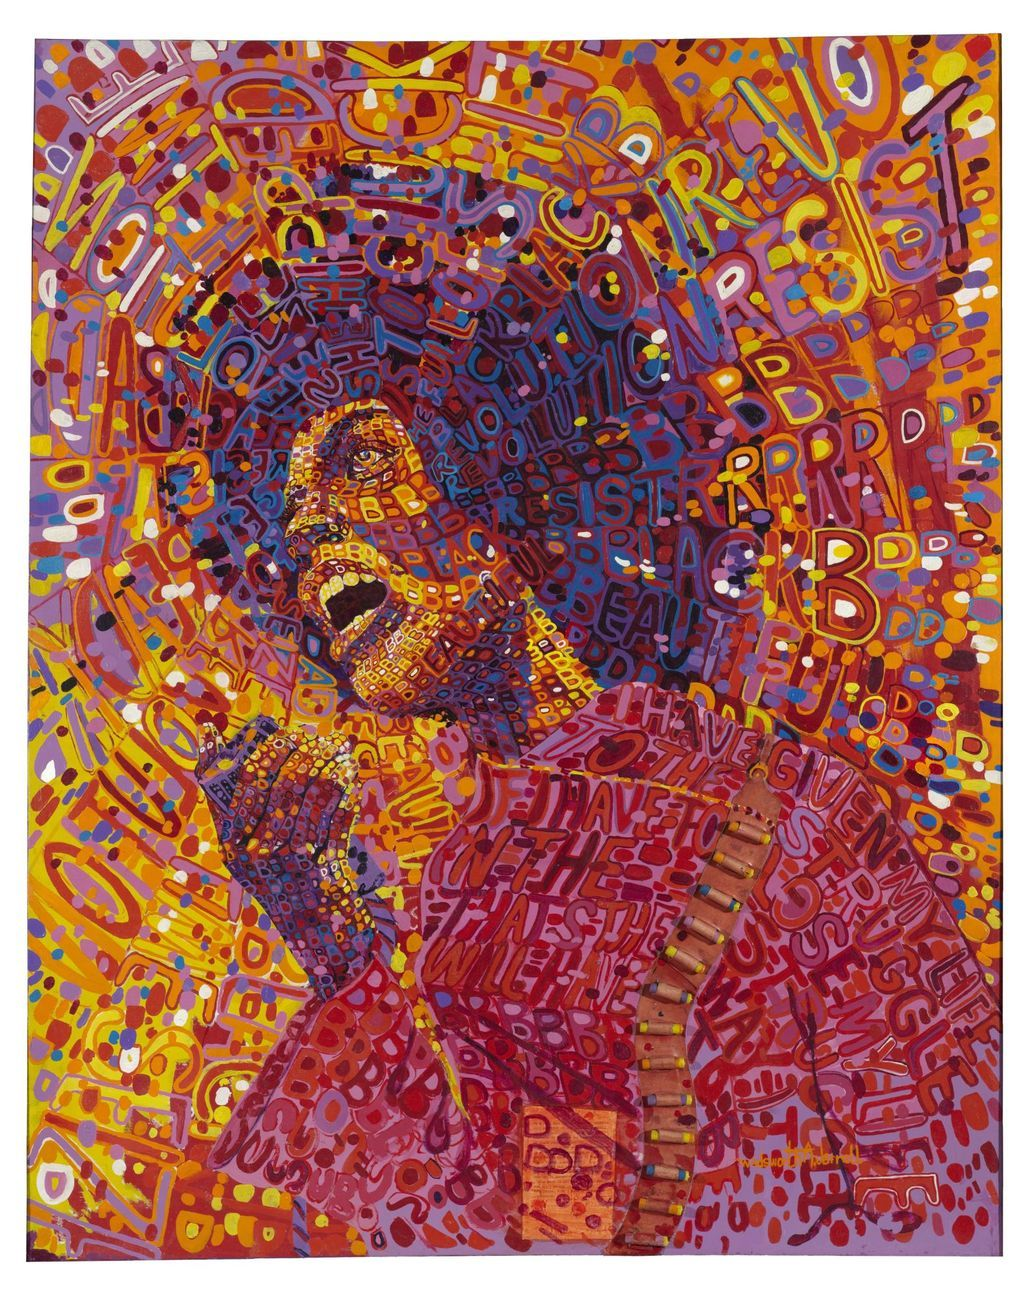 Wadsworth A. Jarrell, Revolutionary (Angela Davis), 1971. Brooklyn Museum © artist or artist's estate